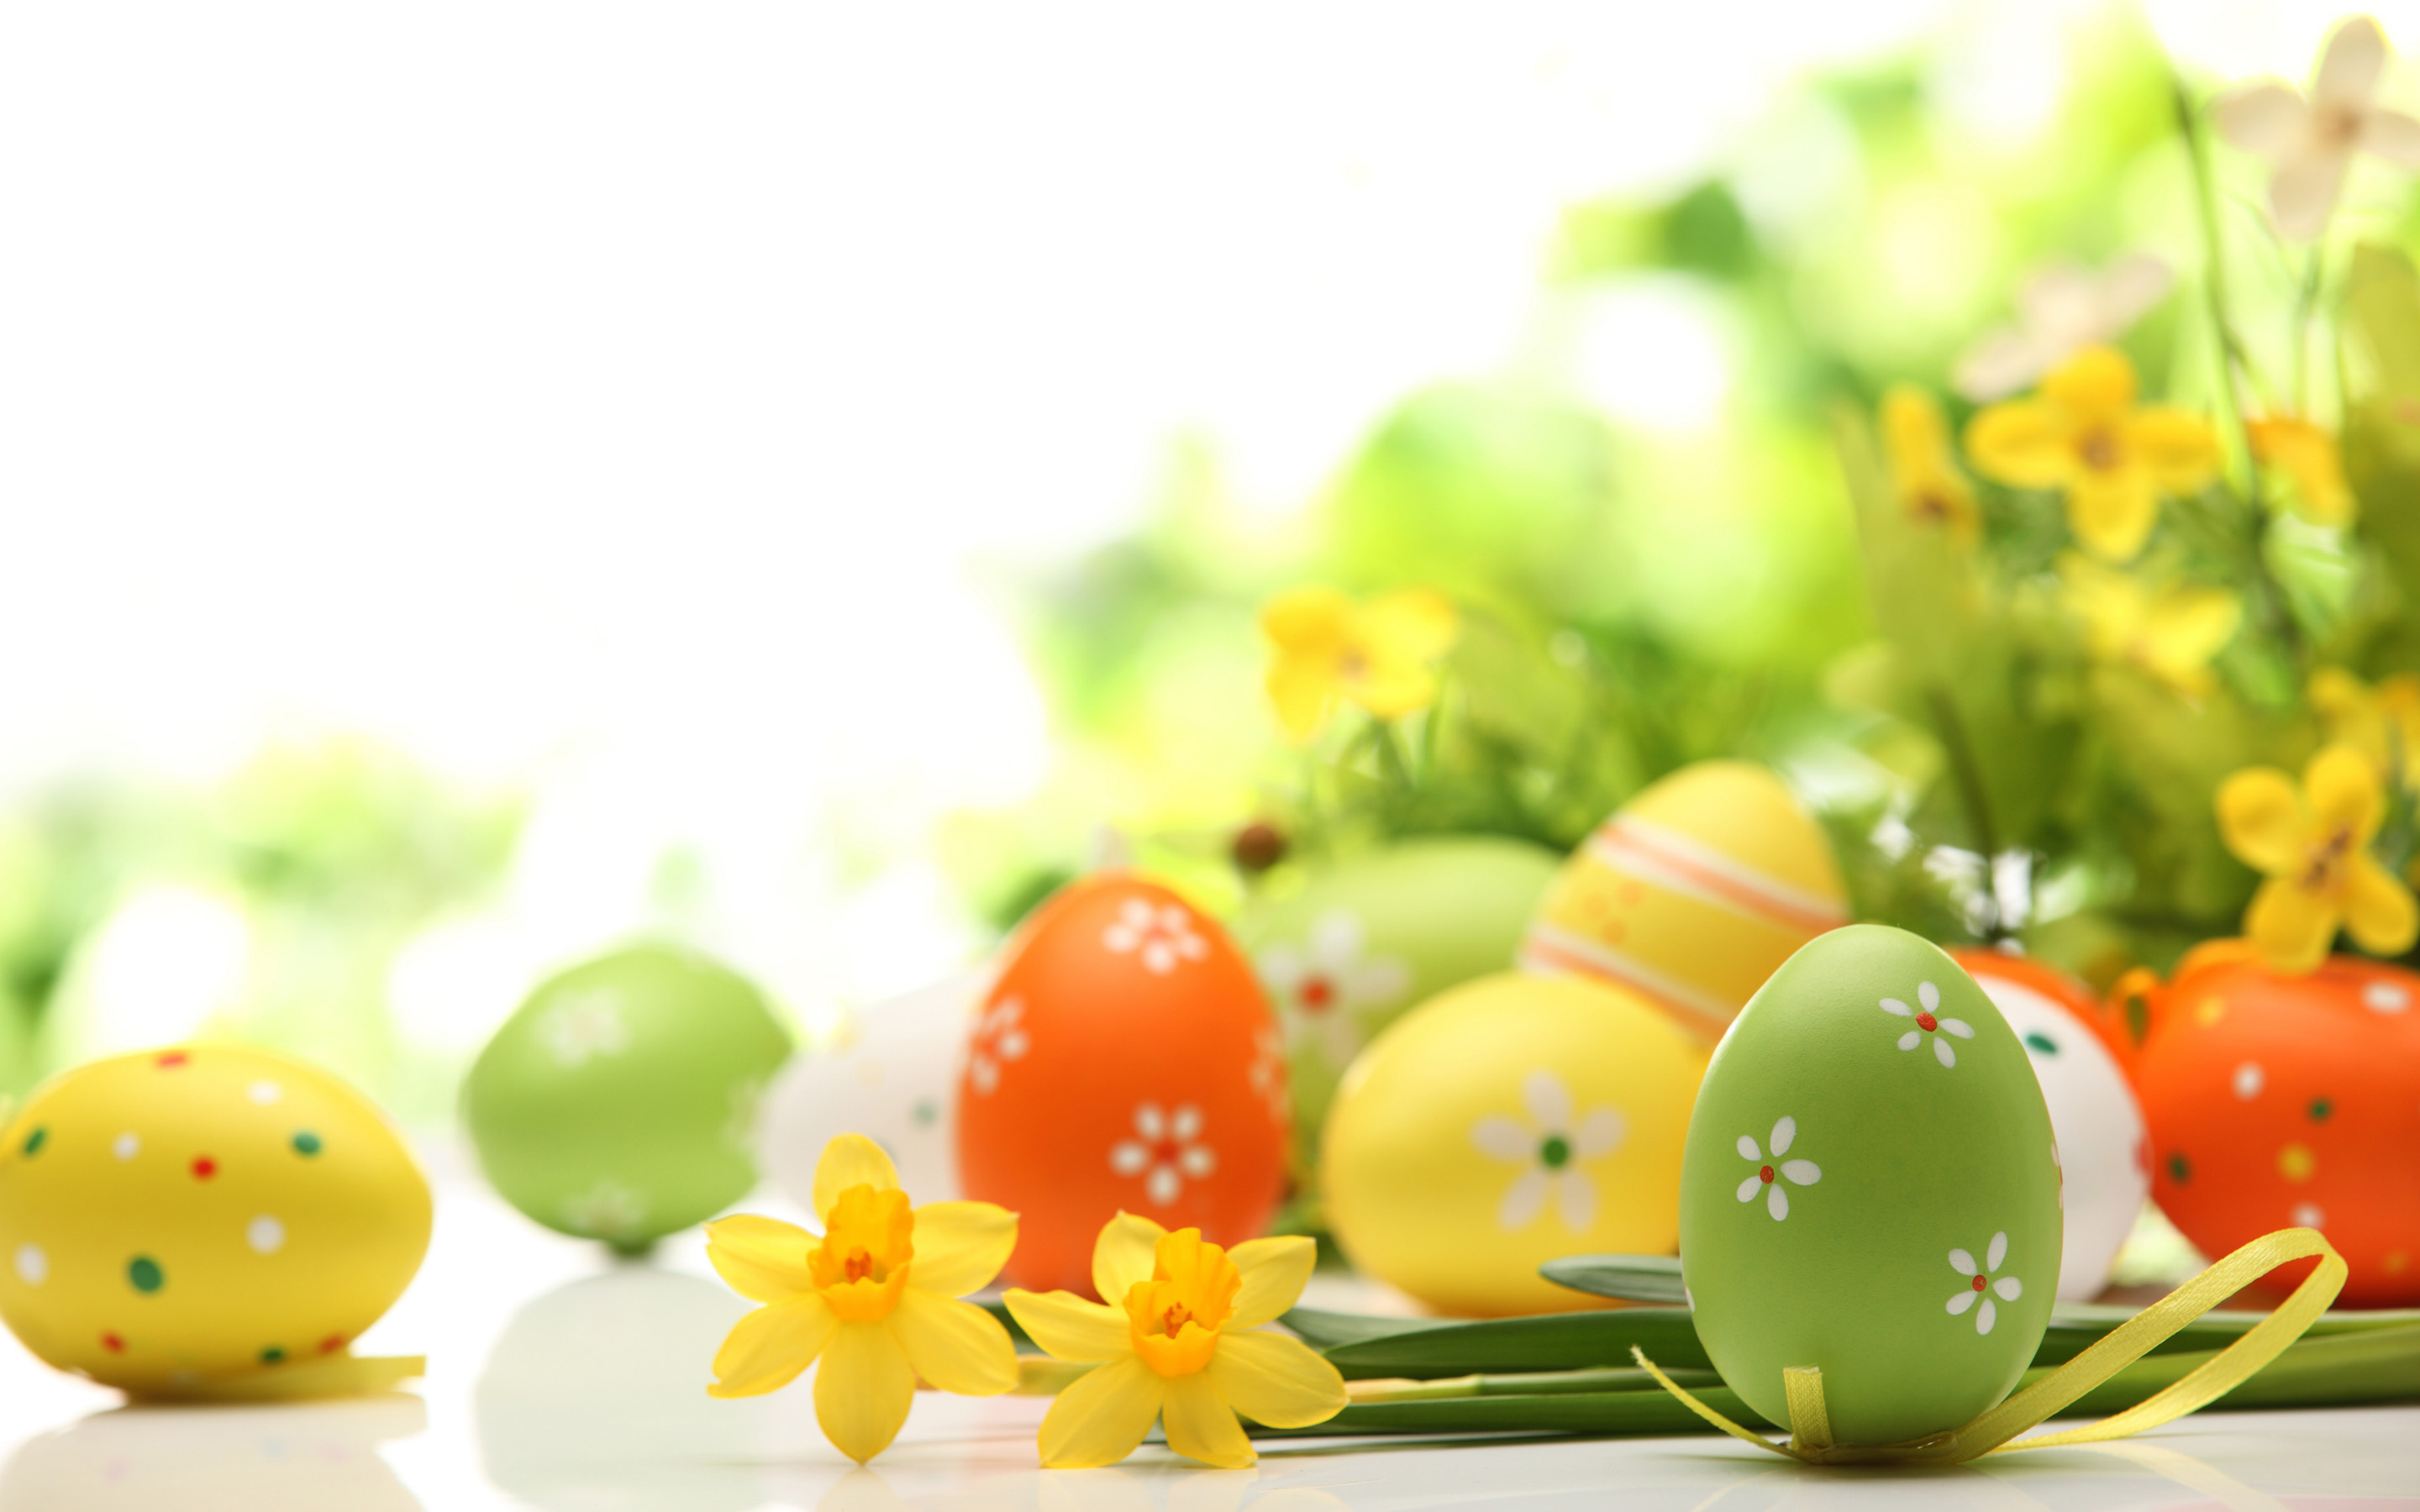 Easter Wallpaper Mobile Compatible Easter Wallpapers Easter 2880x1800